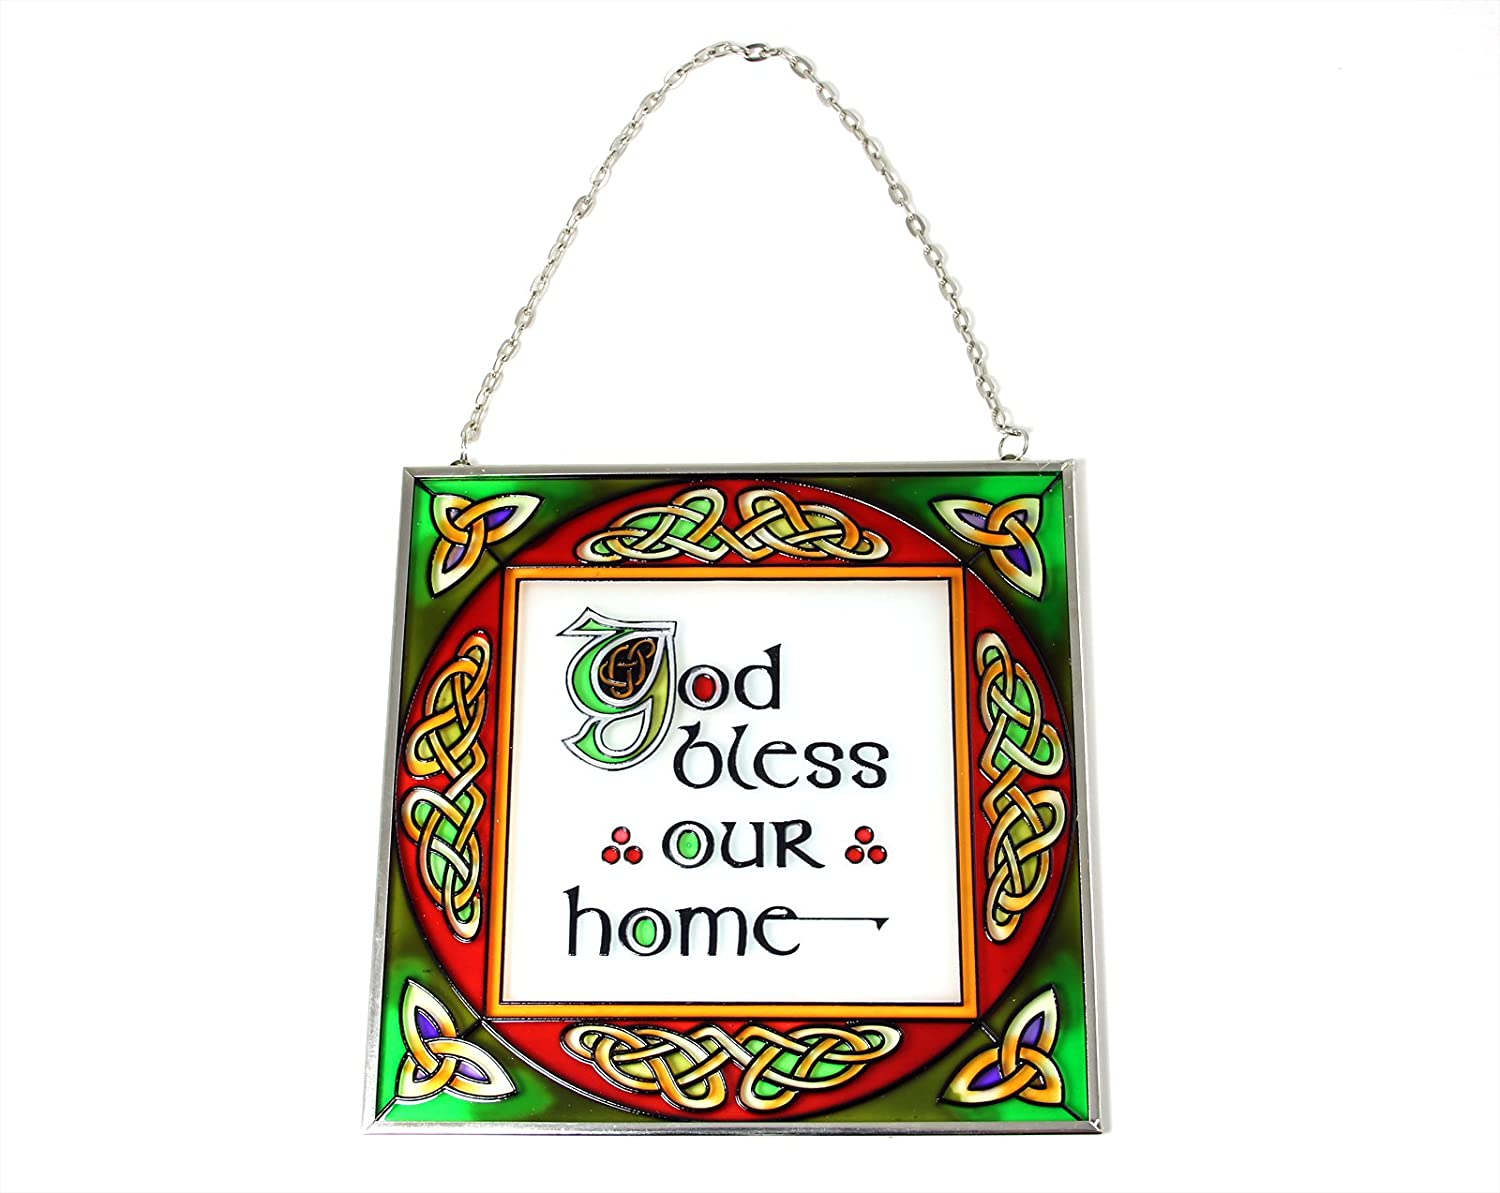 'God Bless Our Home' Celtic Stained Glass Suncatcher Window Hang Royal Tara